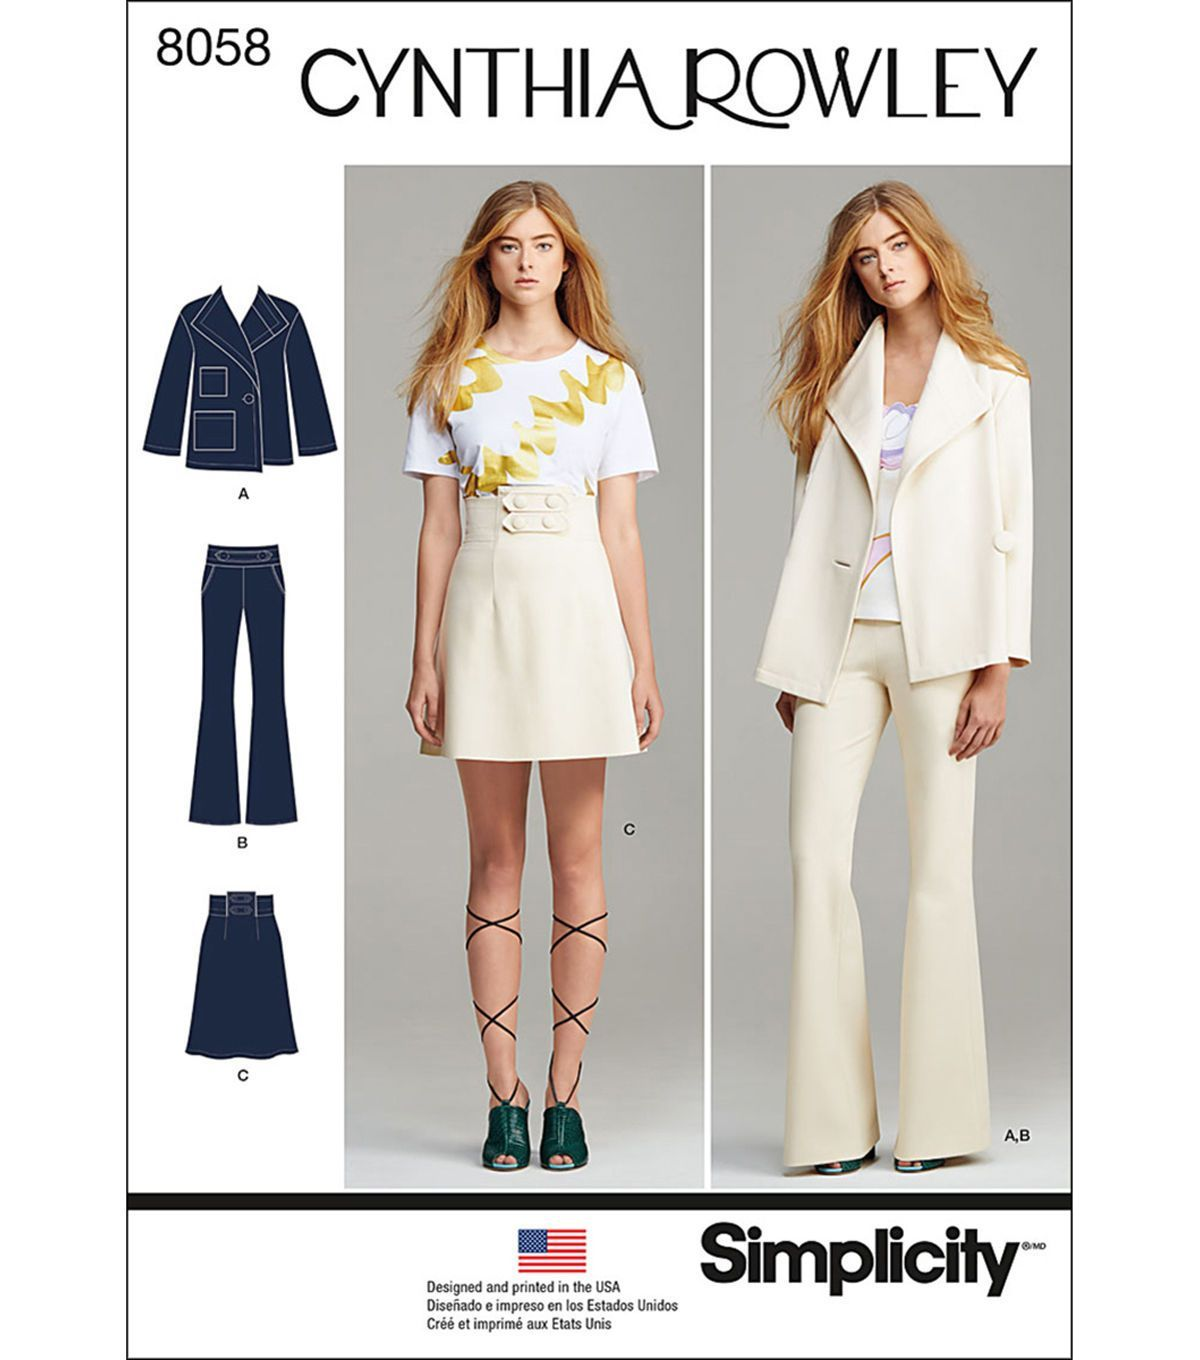 Cynthia Rowley Sewing Patterns: Simplicity Misses' Suit Separates, Cynthia Rowley